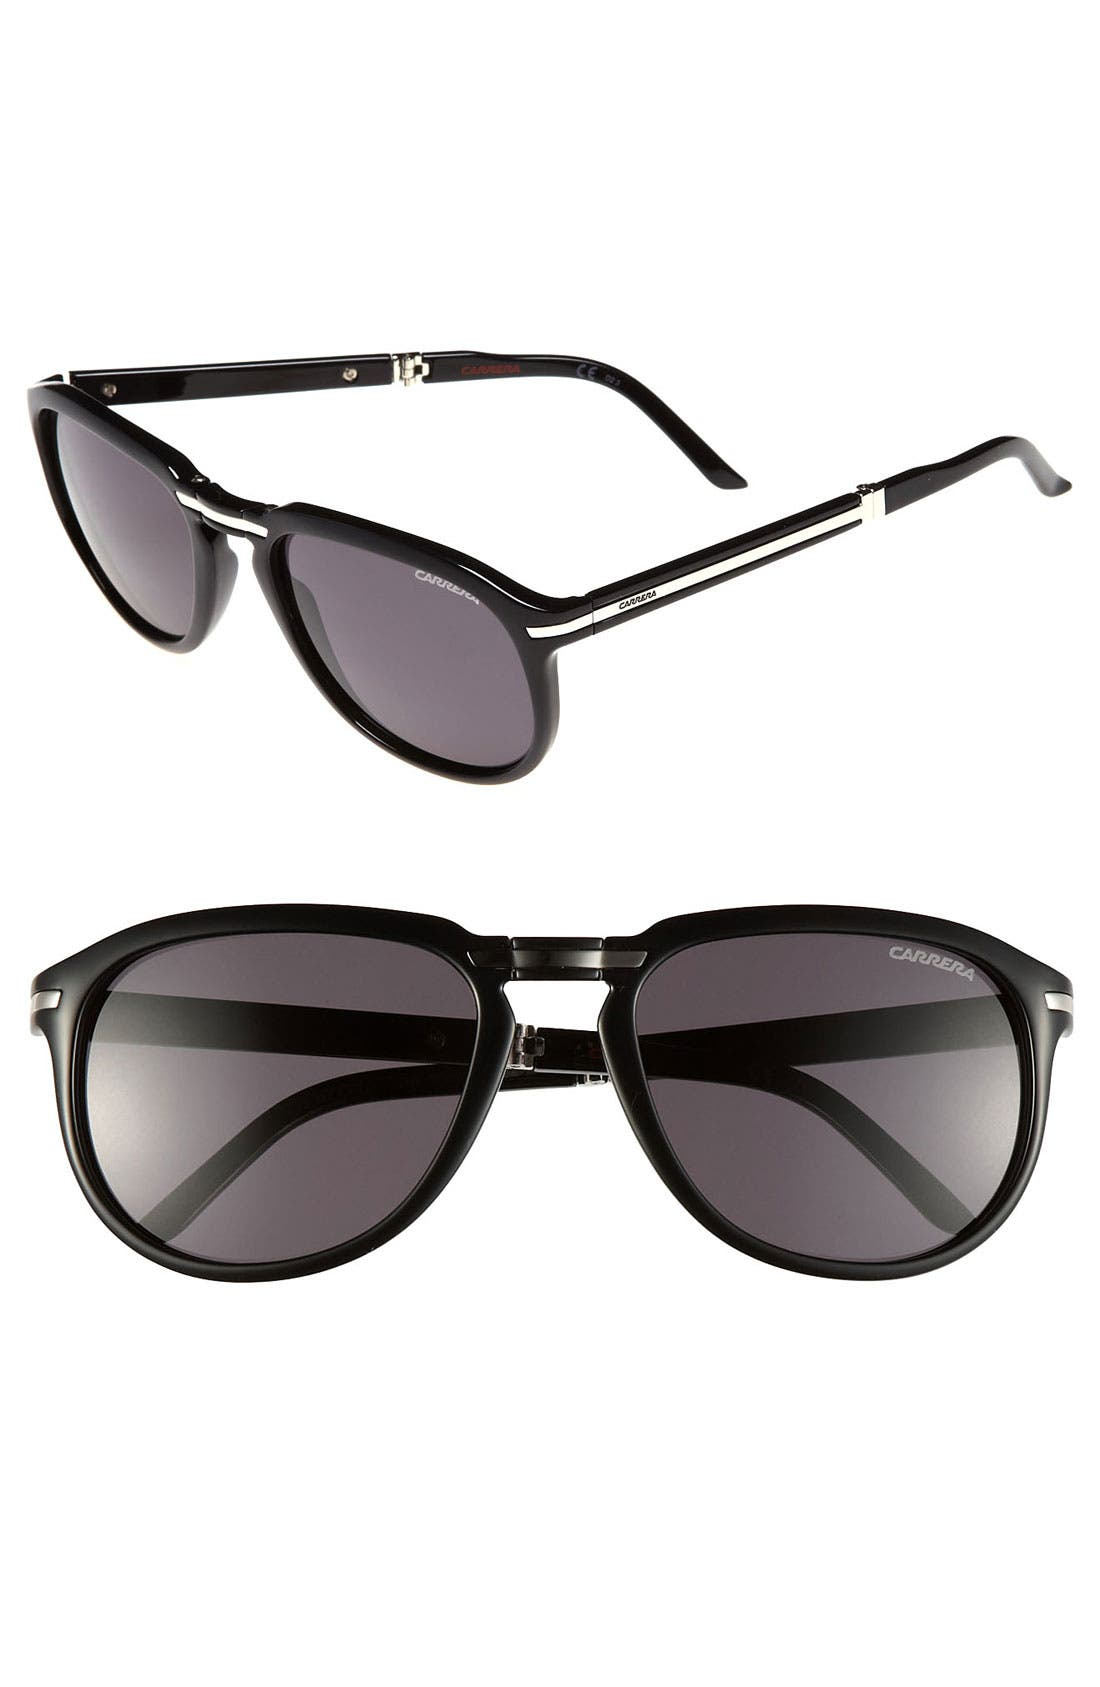 Main Image - Carrera Eyewear 'Pocked Flag' 54 mm Foldable Sunglasses